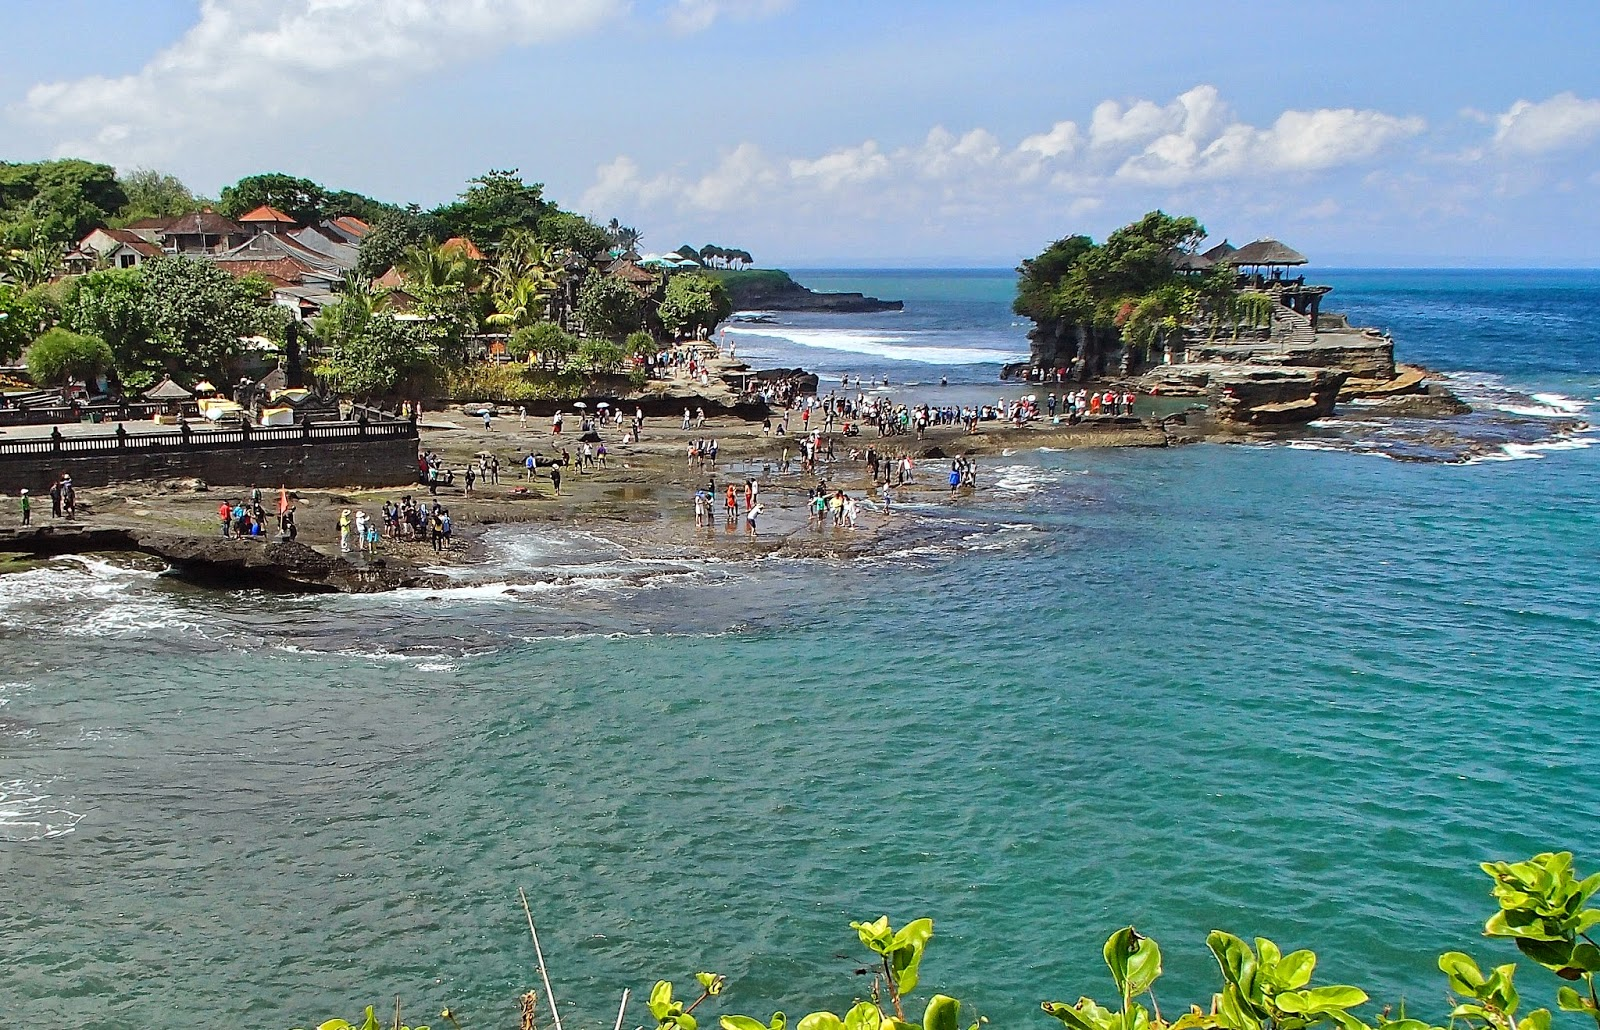 Pantai Lebih Coast Road to Kusamba, Thailand Bali and Other Beaches and Islands: Some info on Bali